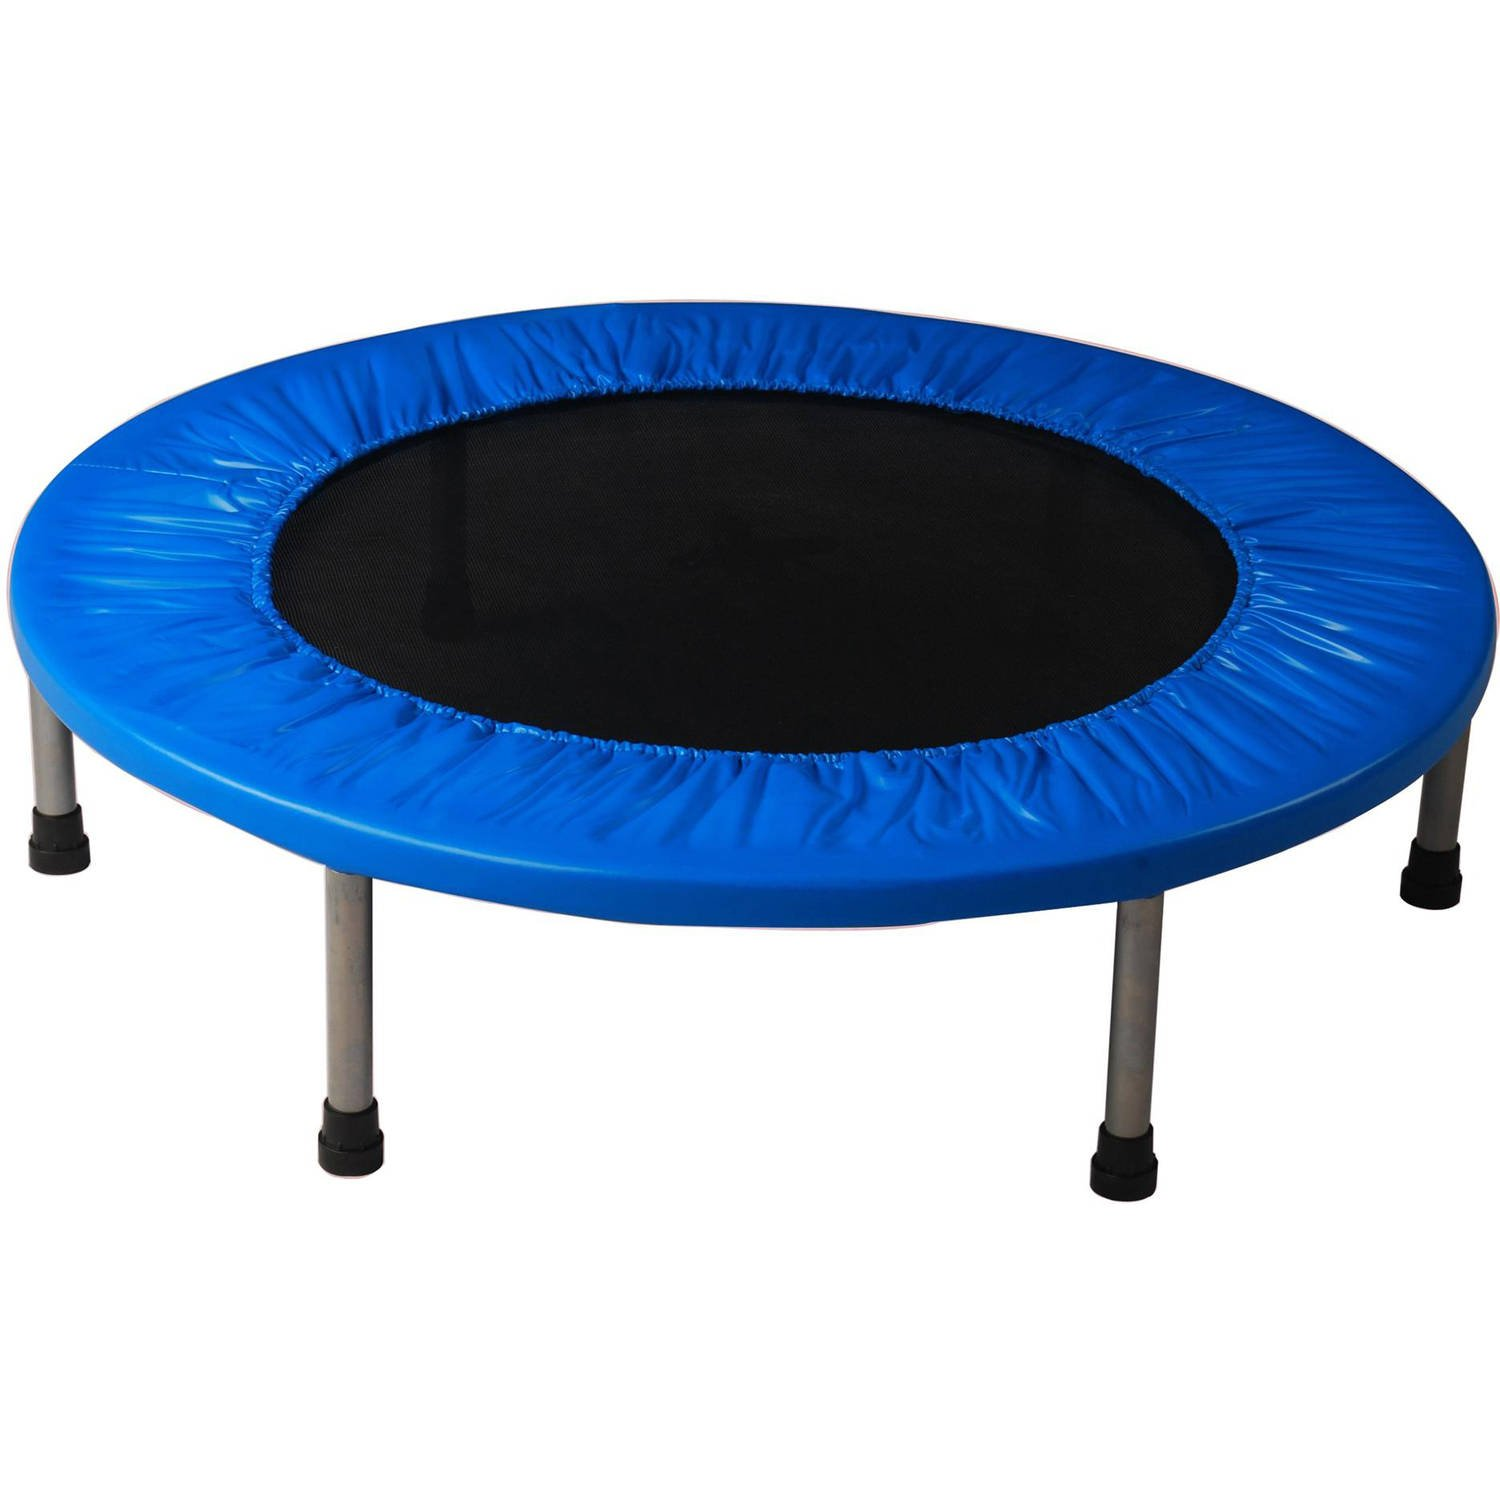 Airzone 48'' Trampoline, Blue